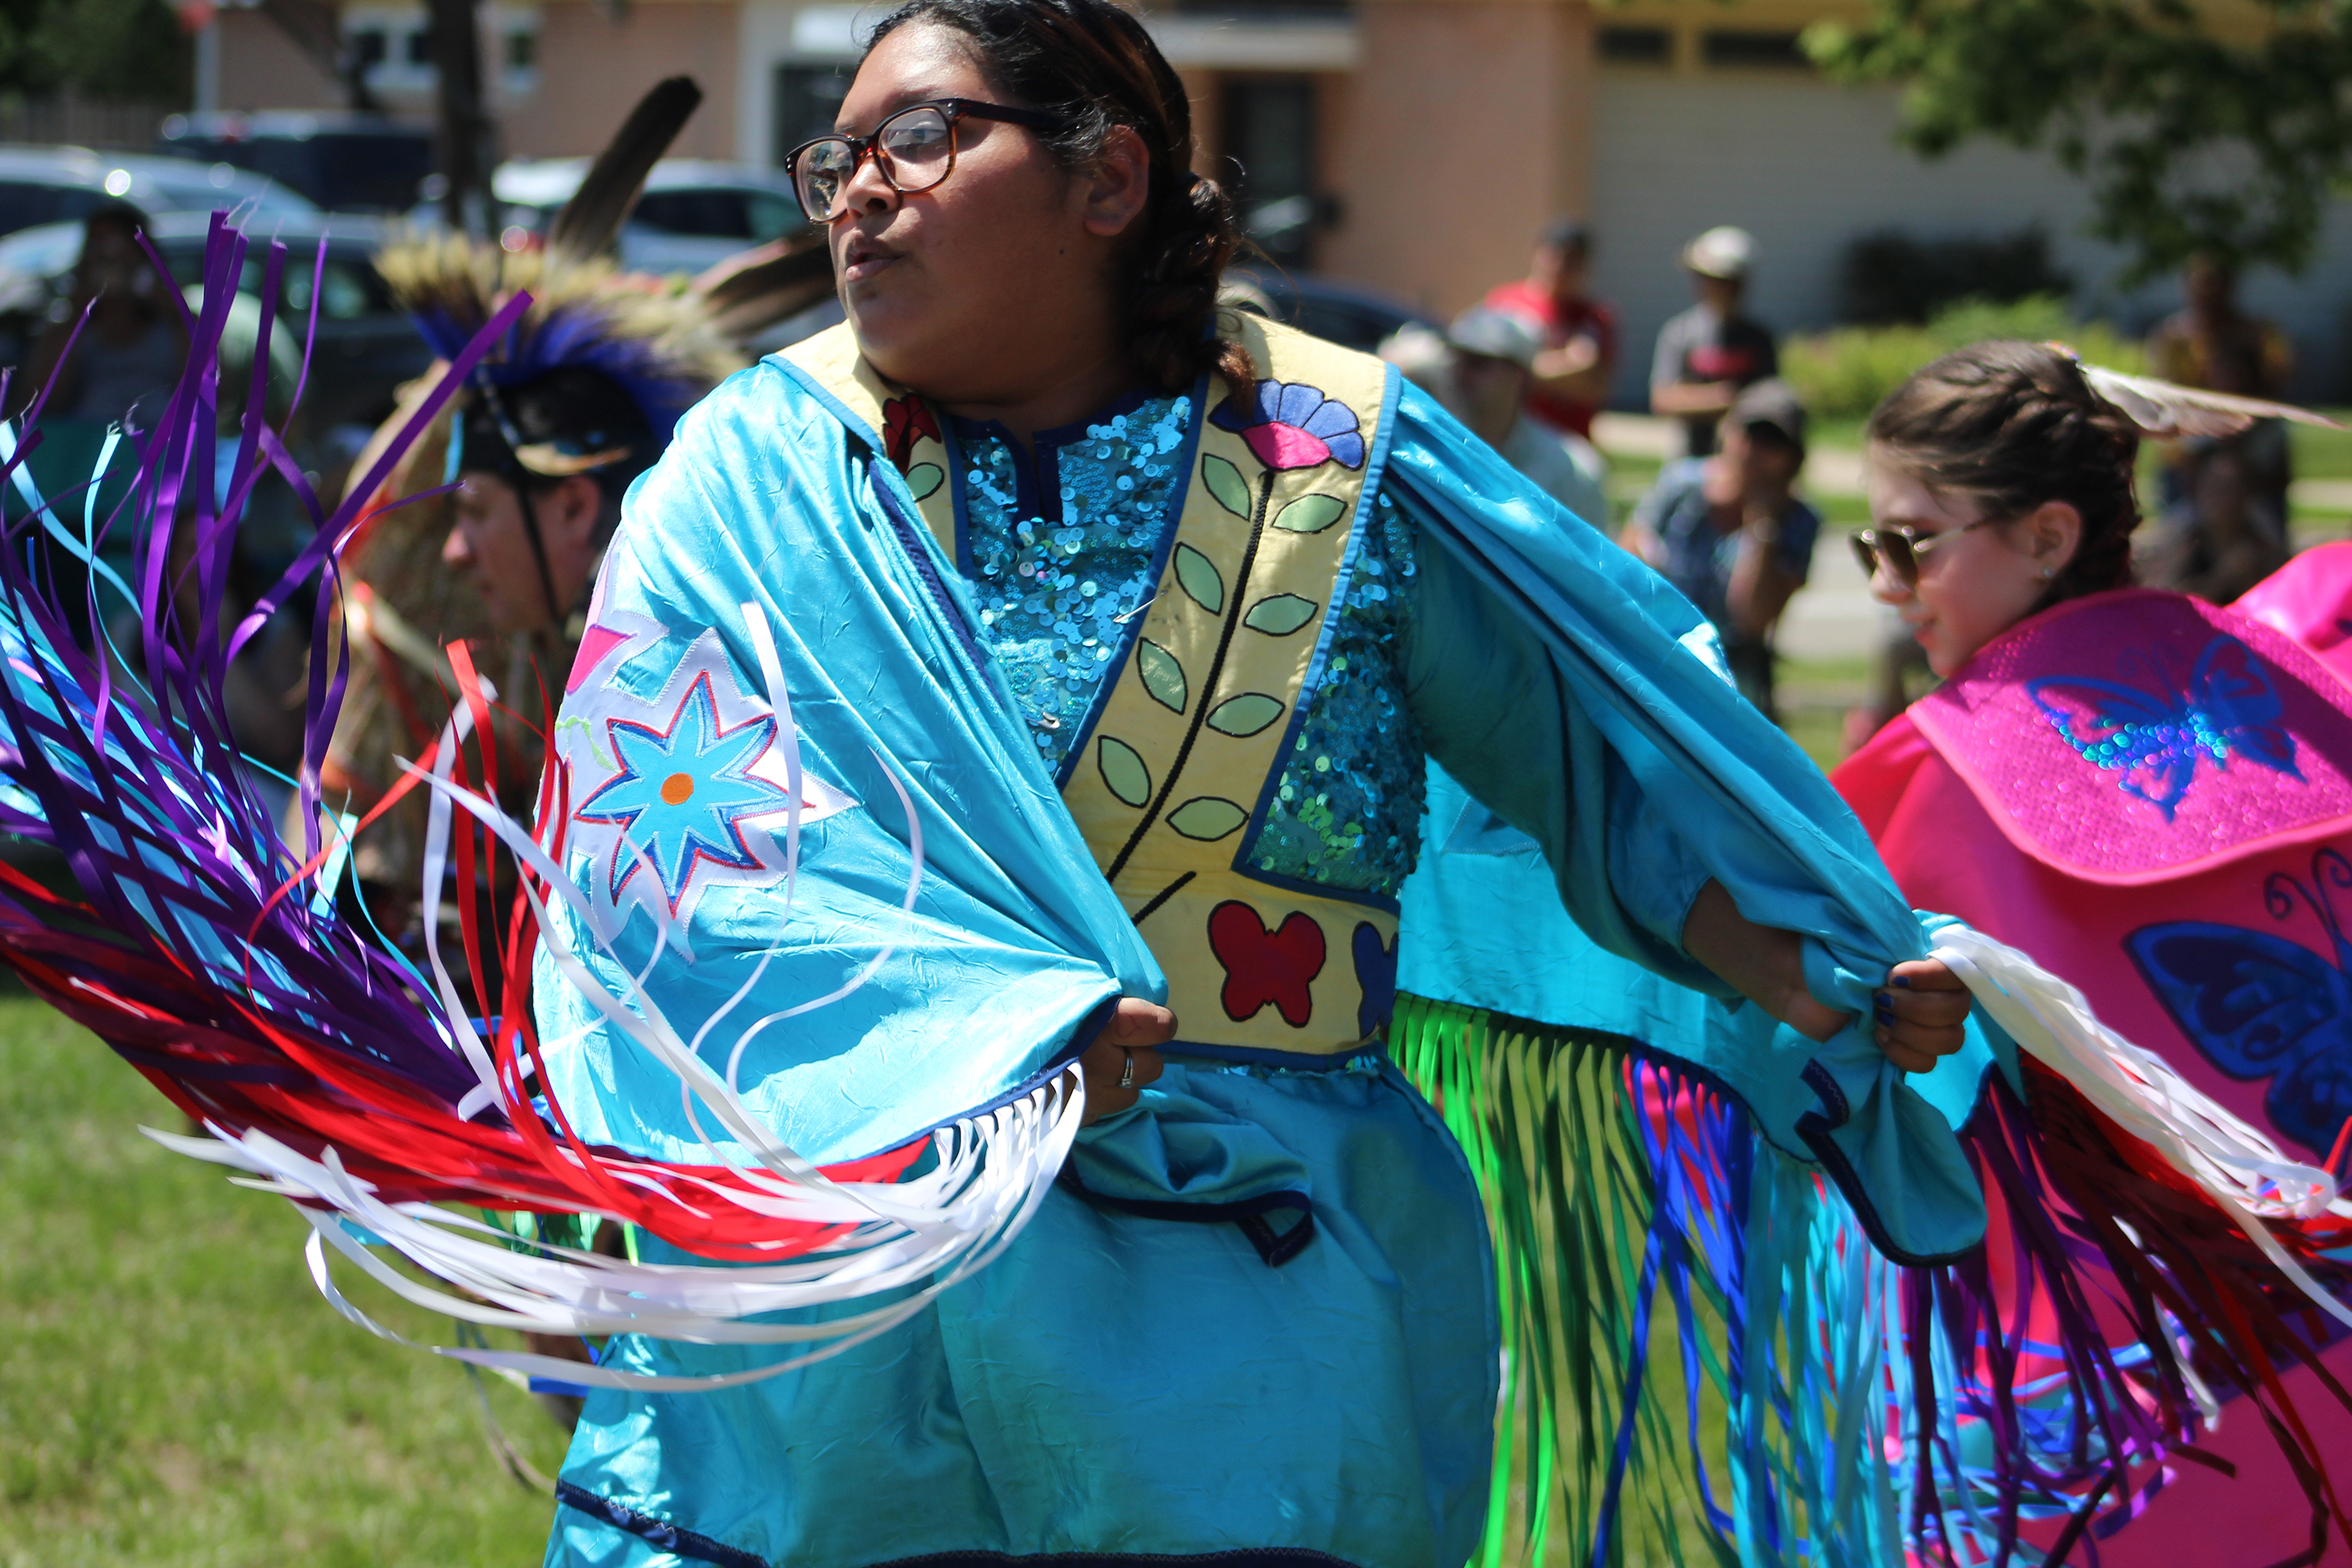 Powwow dancers were awash in color June 5 as they made their way around the makeshift arena set up on the lawn of the Oshkosh Public Museum for the opening of the Menominee Clans Story exhibit.(Lee Pulaski   NEW Media)